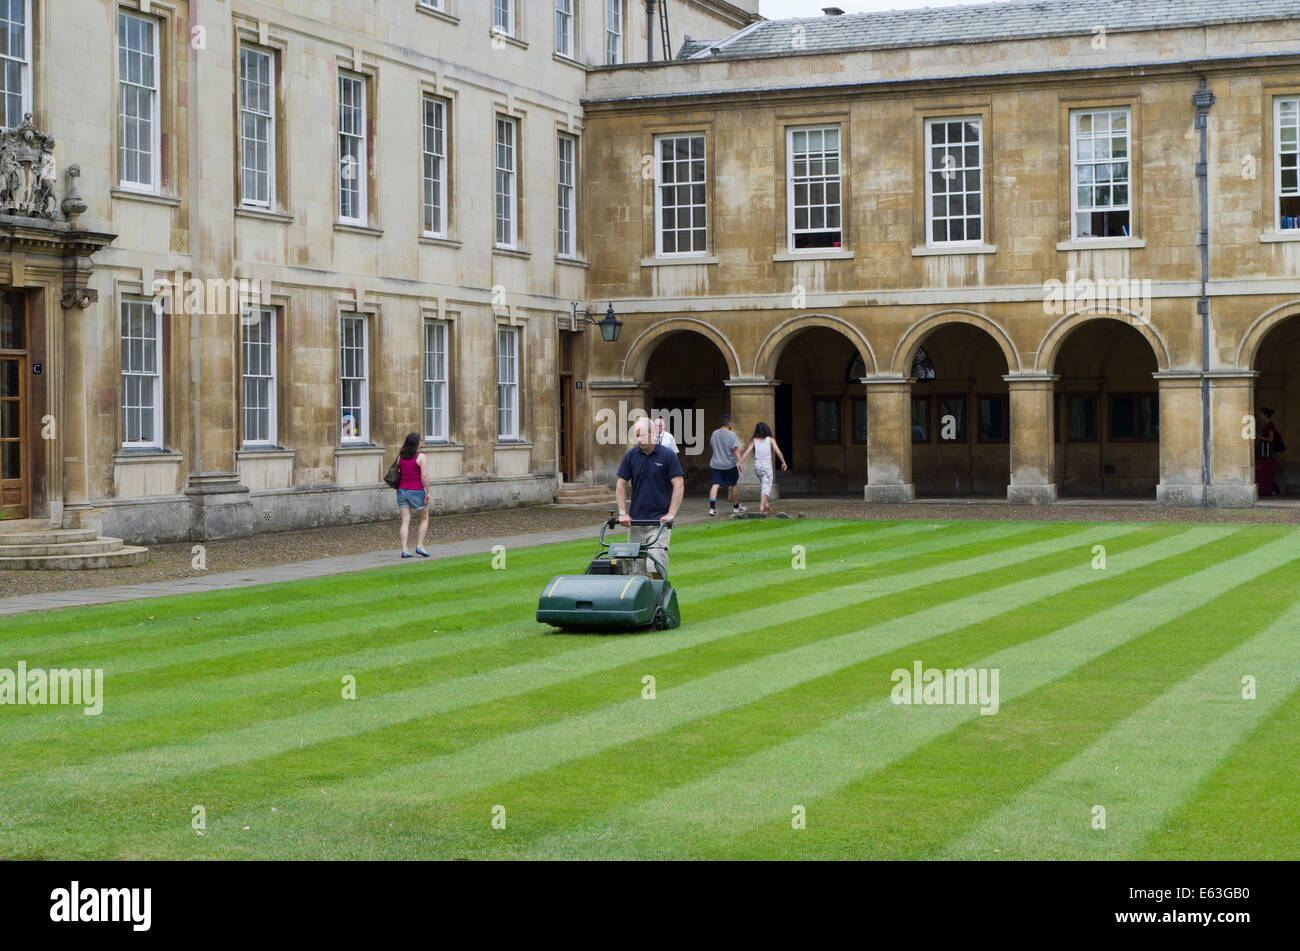 Gardener mowing the lawn within Emmanuel College, Cambridge, UK - Stock Image